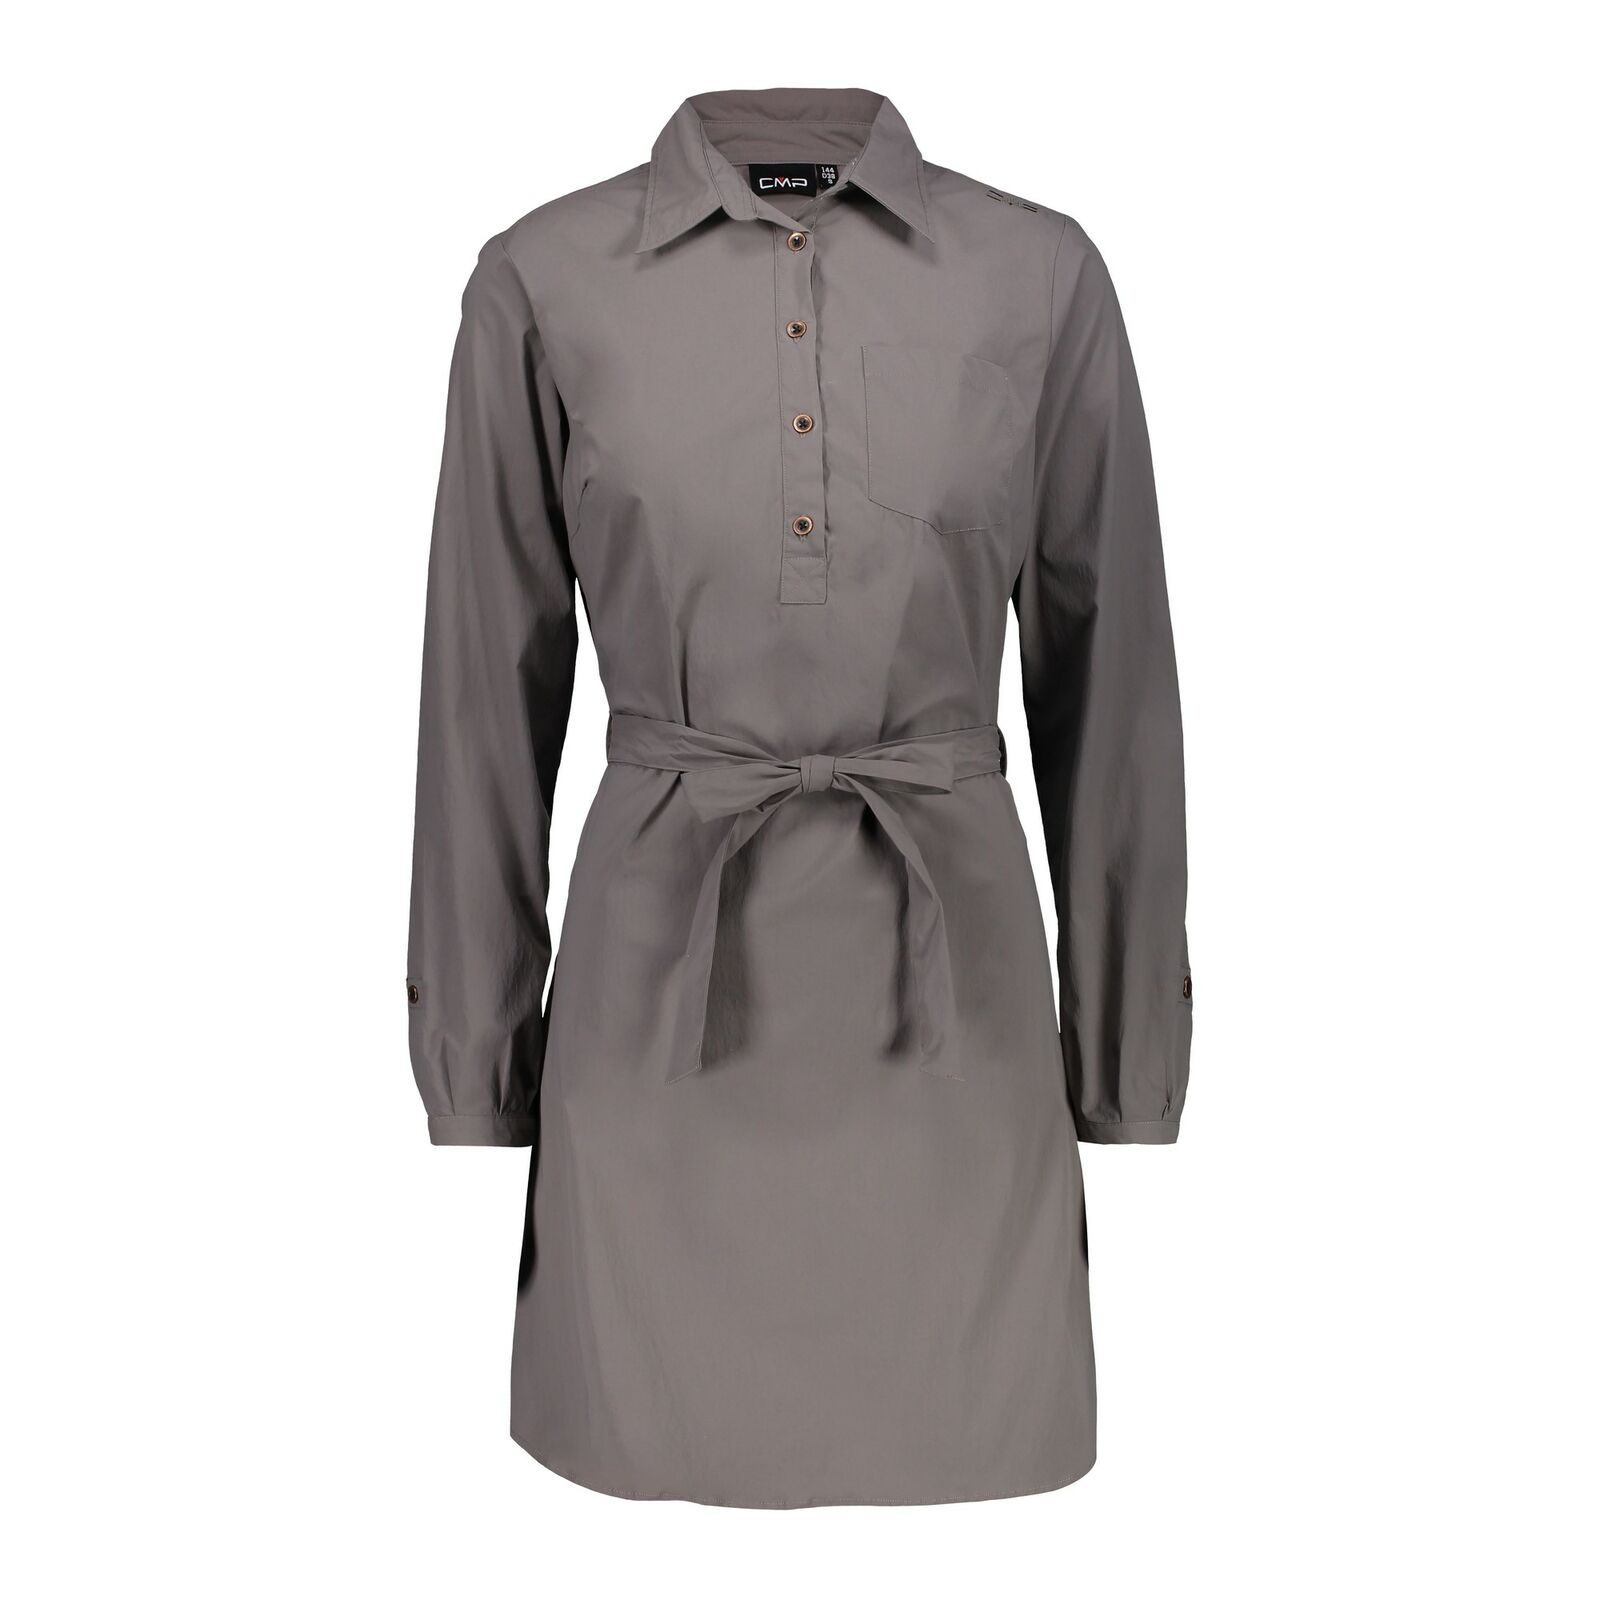 CMP dress  blouse woman dress brown waterproof breathable elastic  manufacturers direct supply